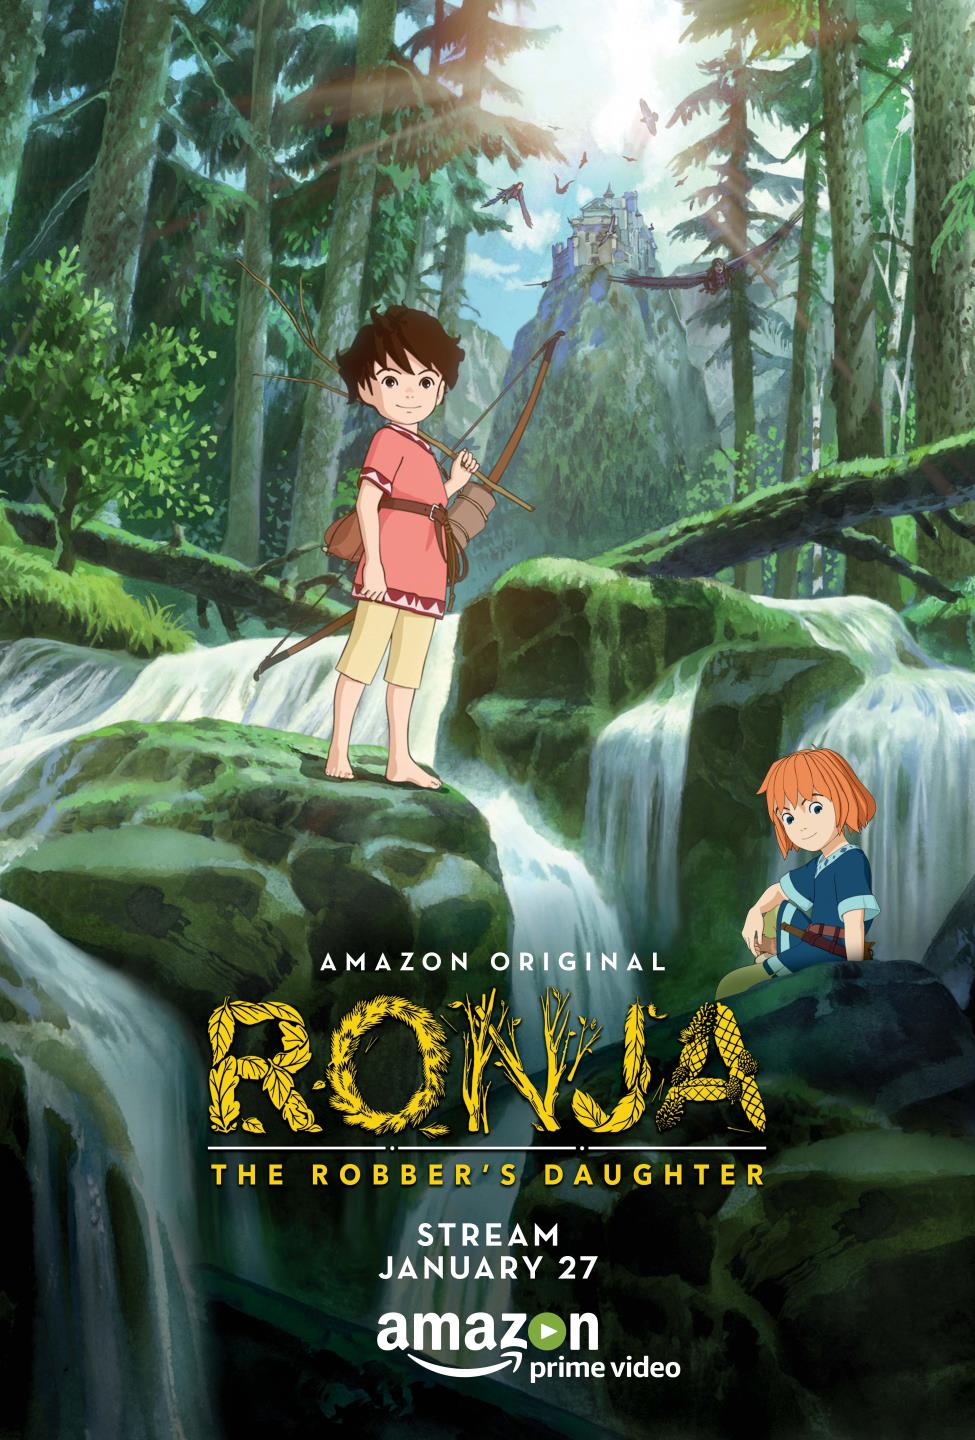 Ronja The Robber's Daughter, Amazon Prime Jan 27, Ronia, Studio Ghibli